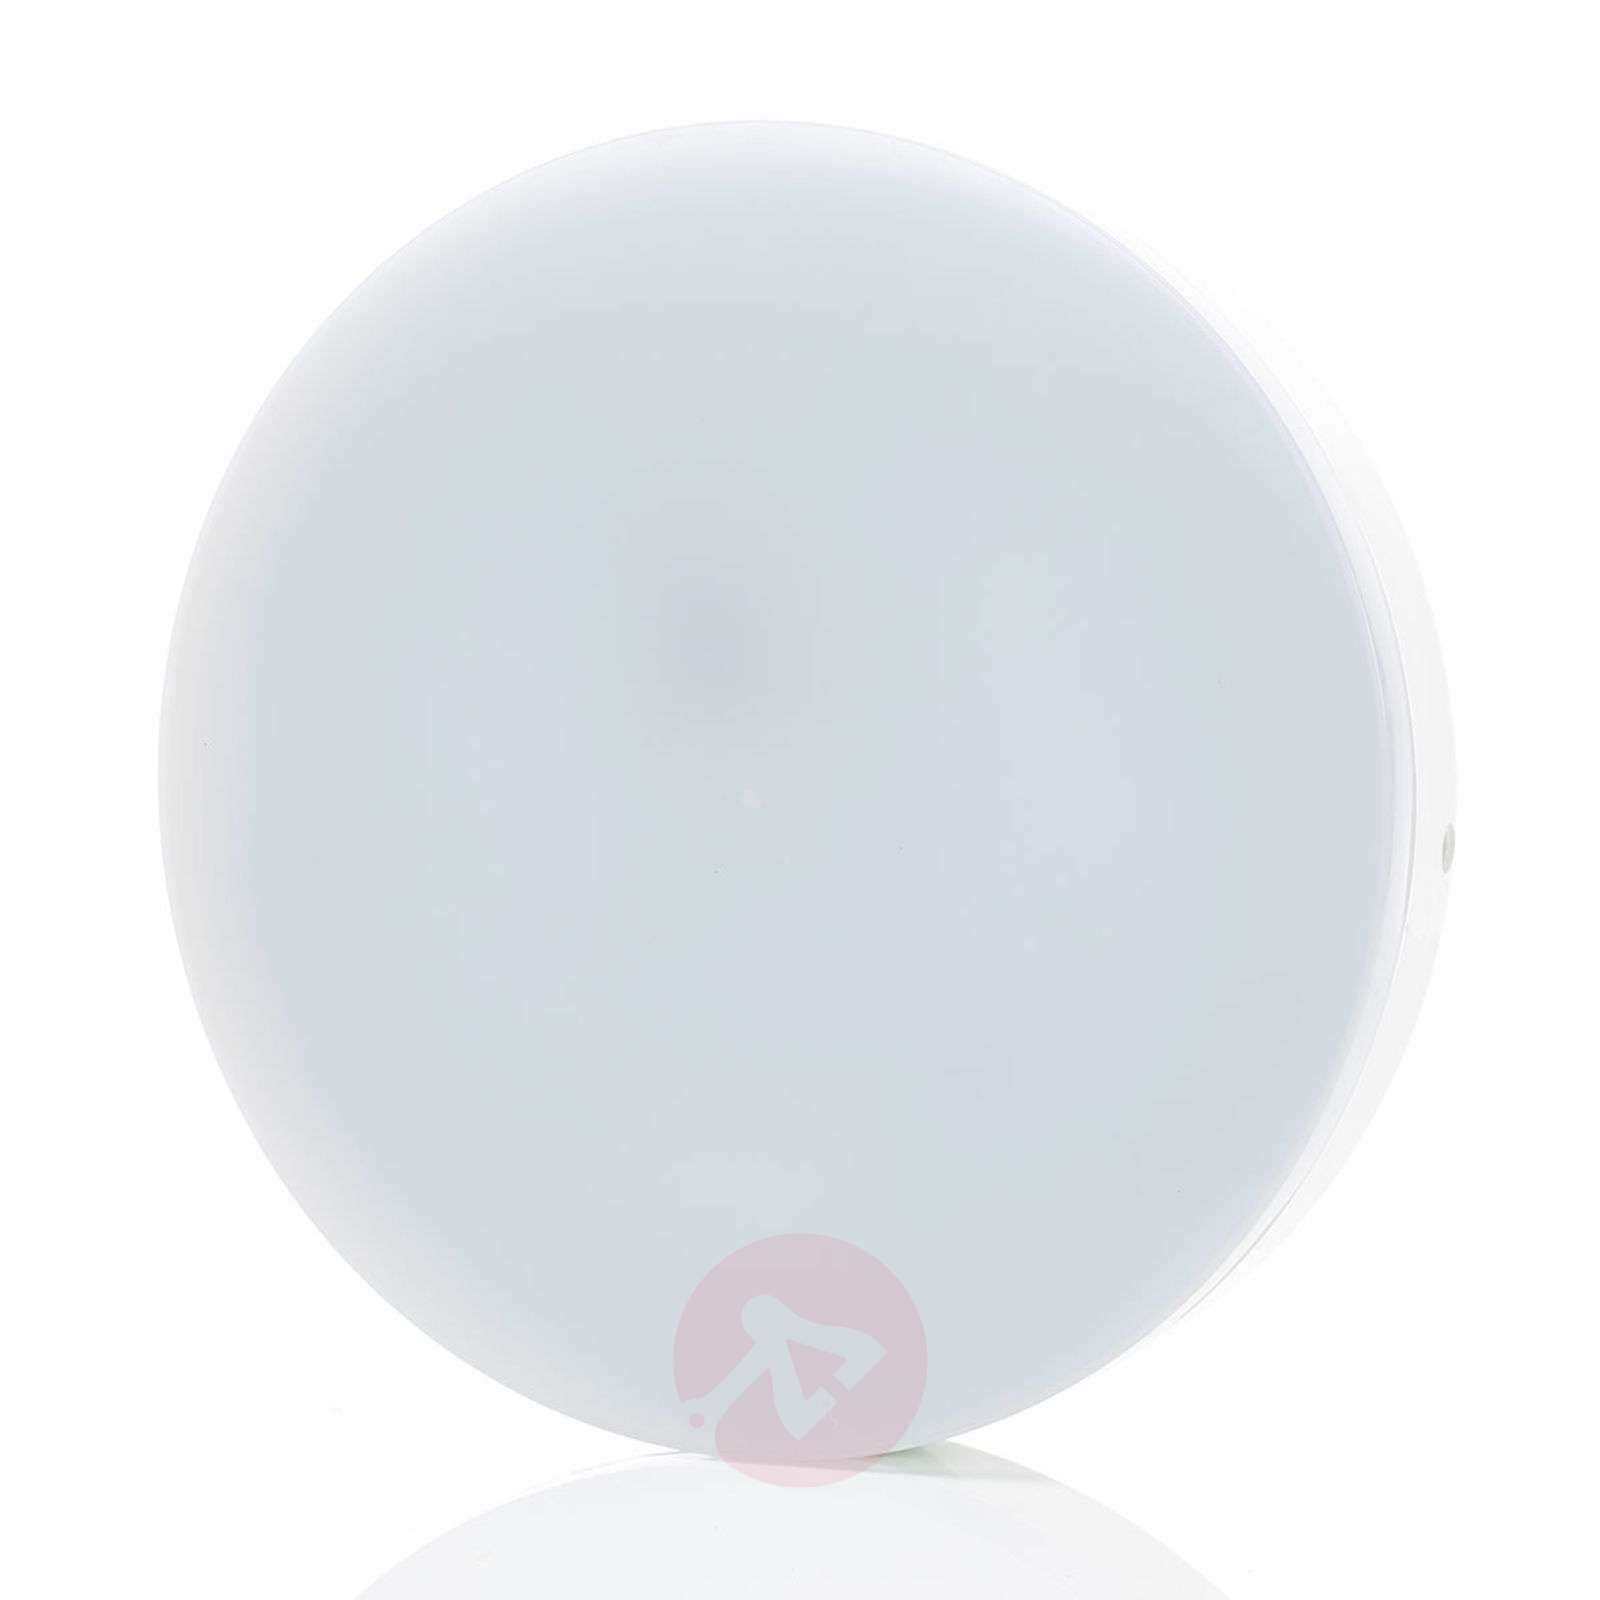 LED plafondlamp Office Round met sensor-8559229-01